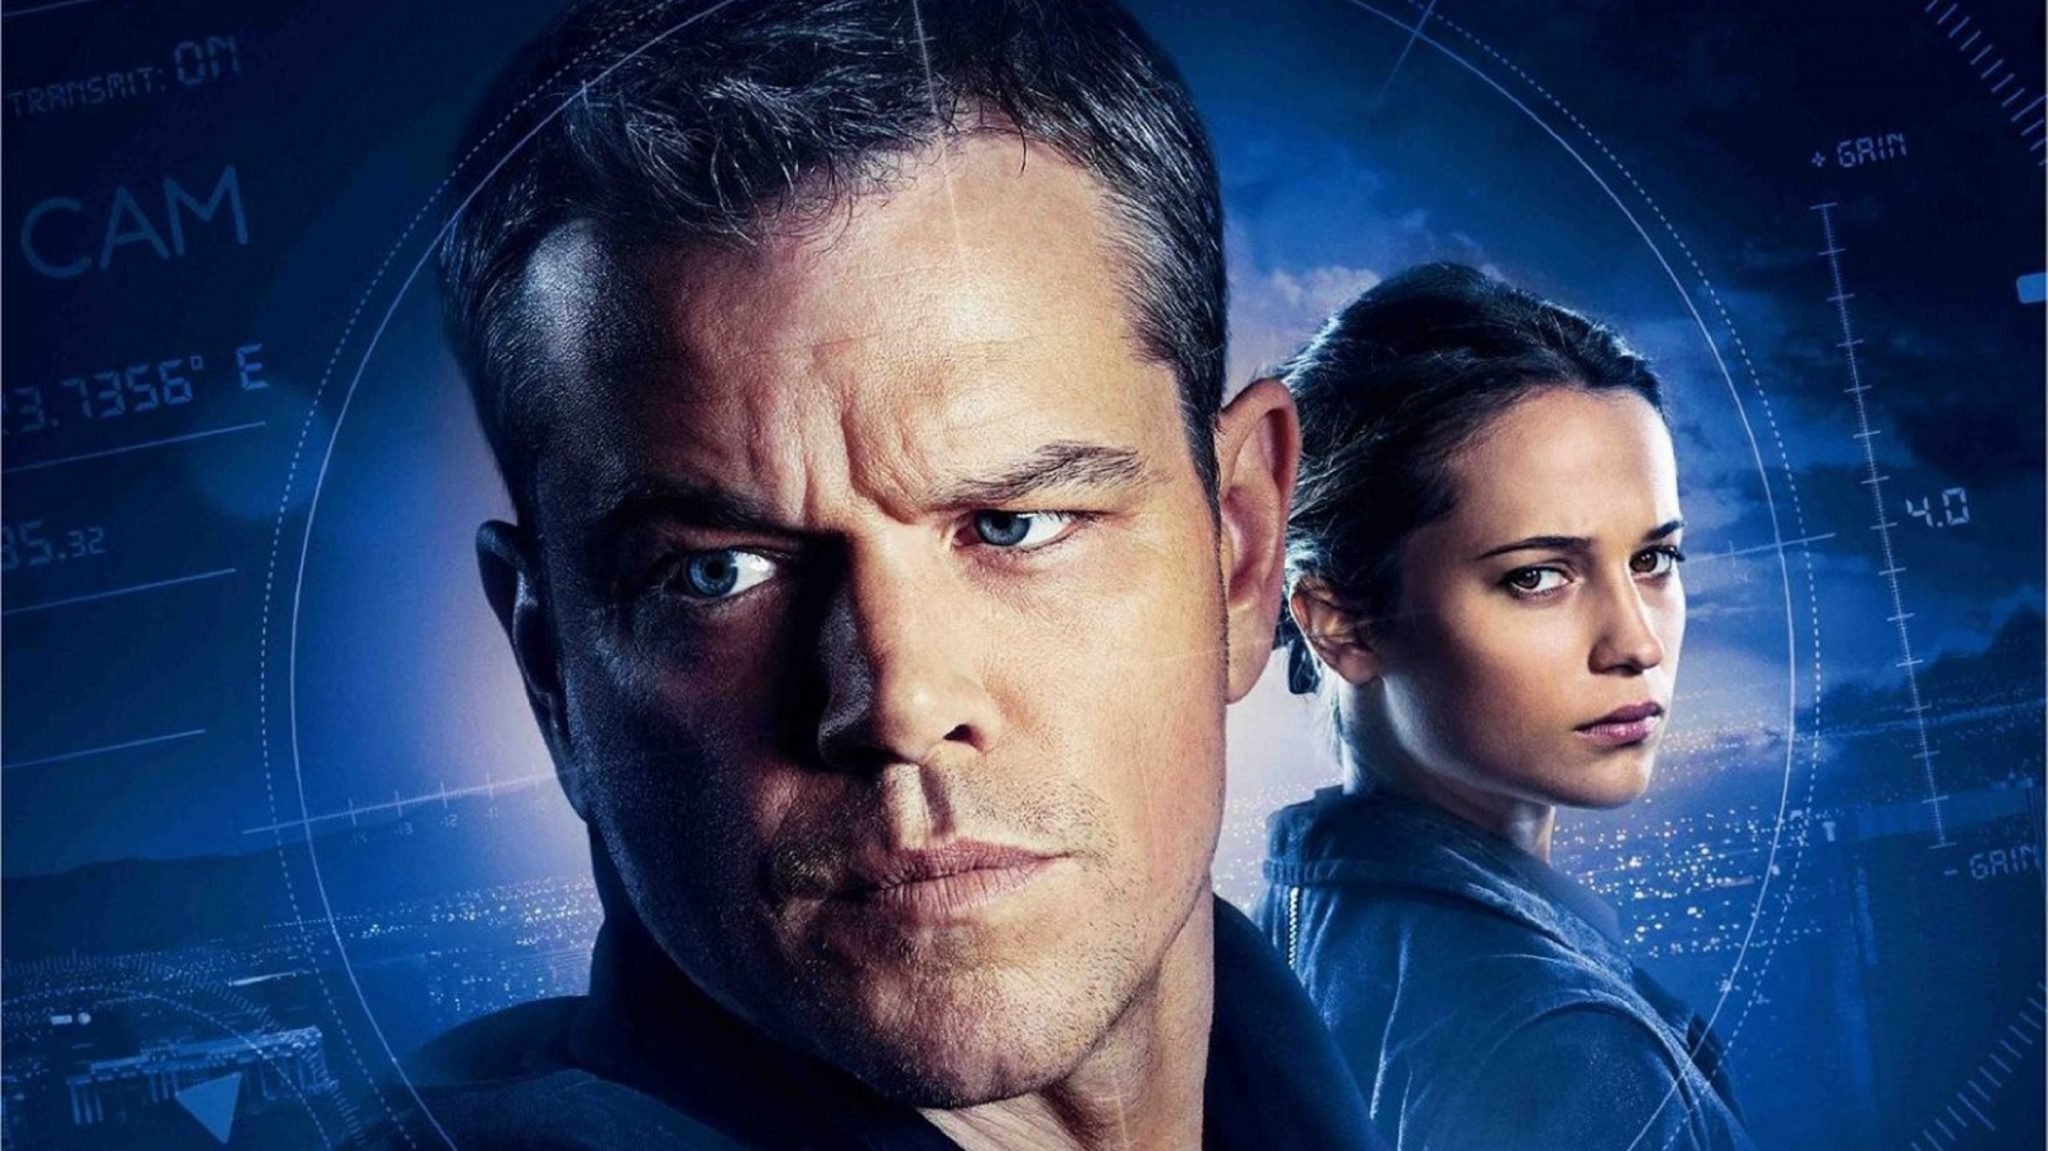 Review: 'Jason Bourne' Is a Return to Formula, And Not in a Good Way